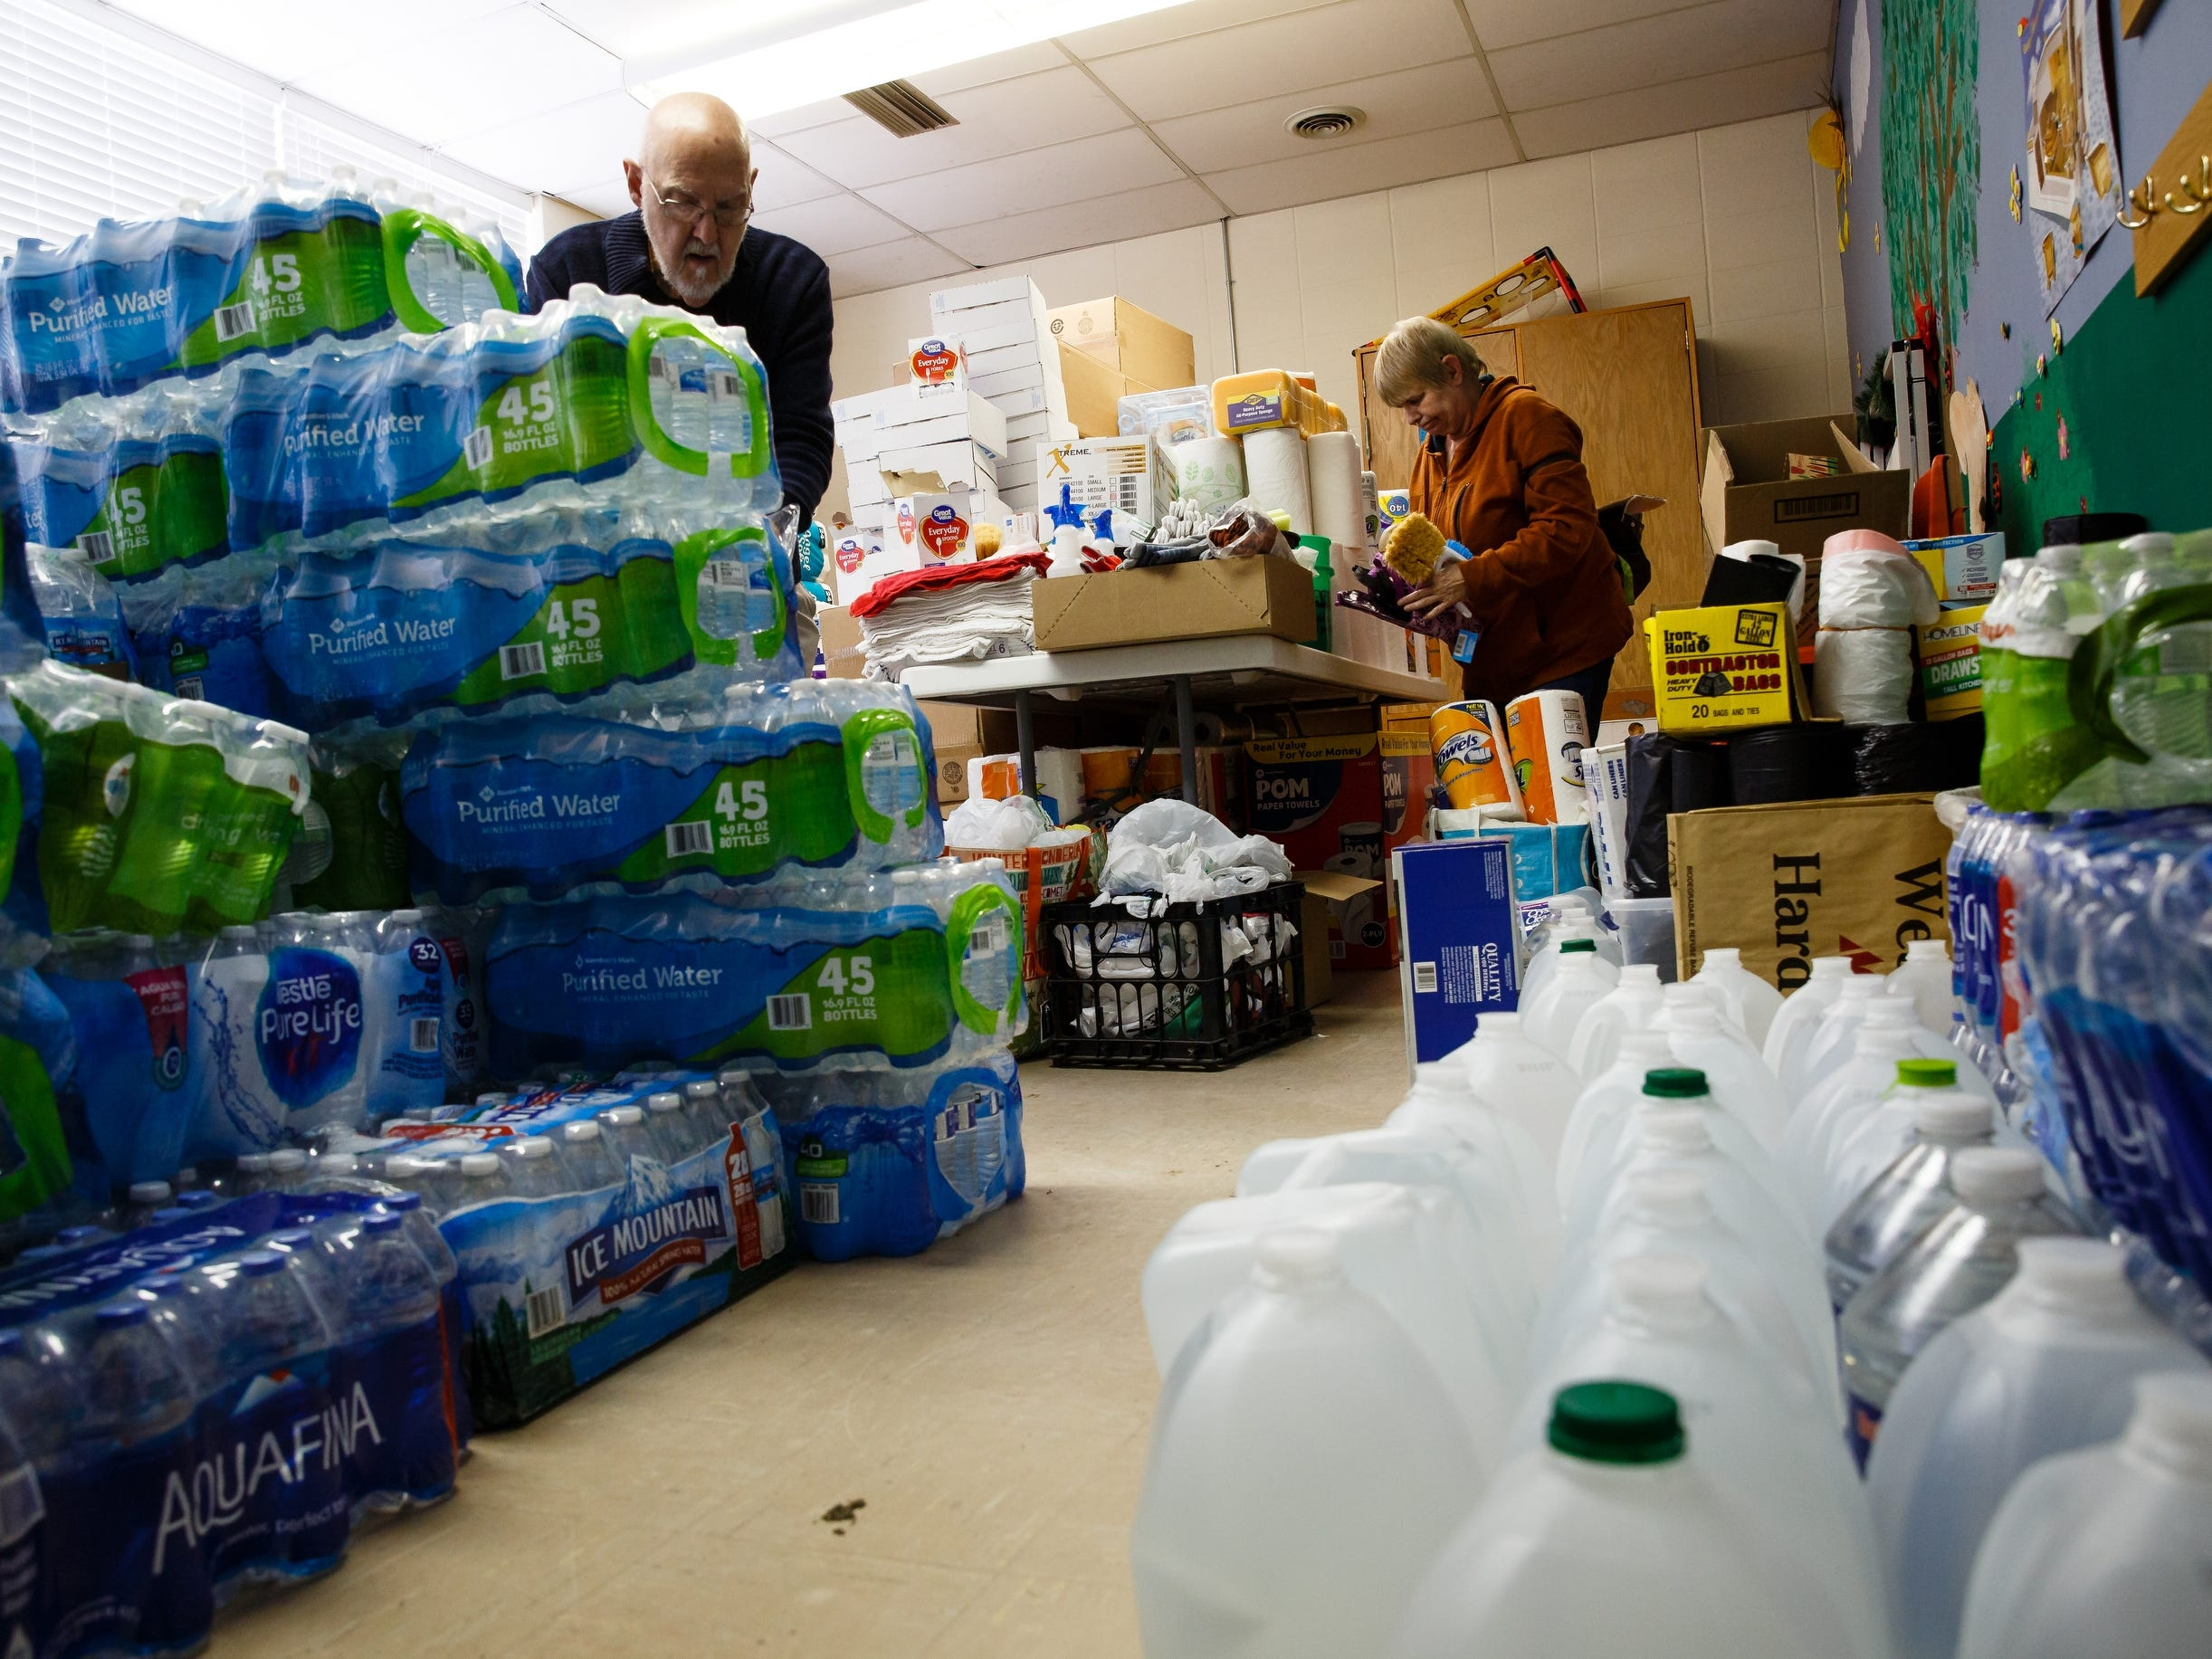 Mills County residents sort through donations of water and other supplies for victims of the rising flood waters along the Missouri River on Wednesday, March 20, 2019, in Glenwood.